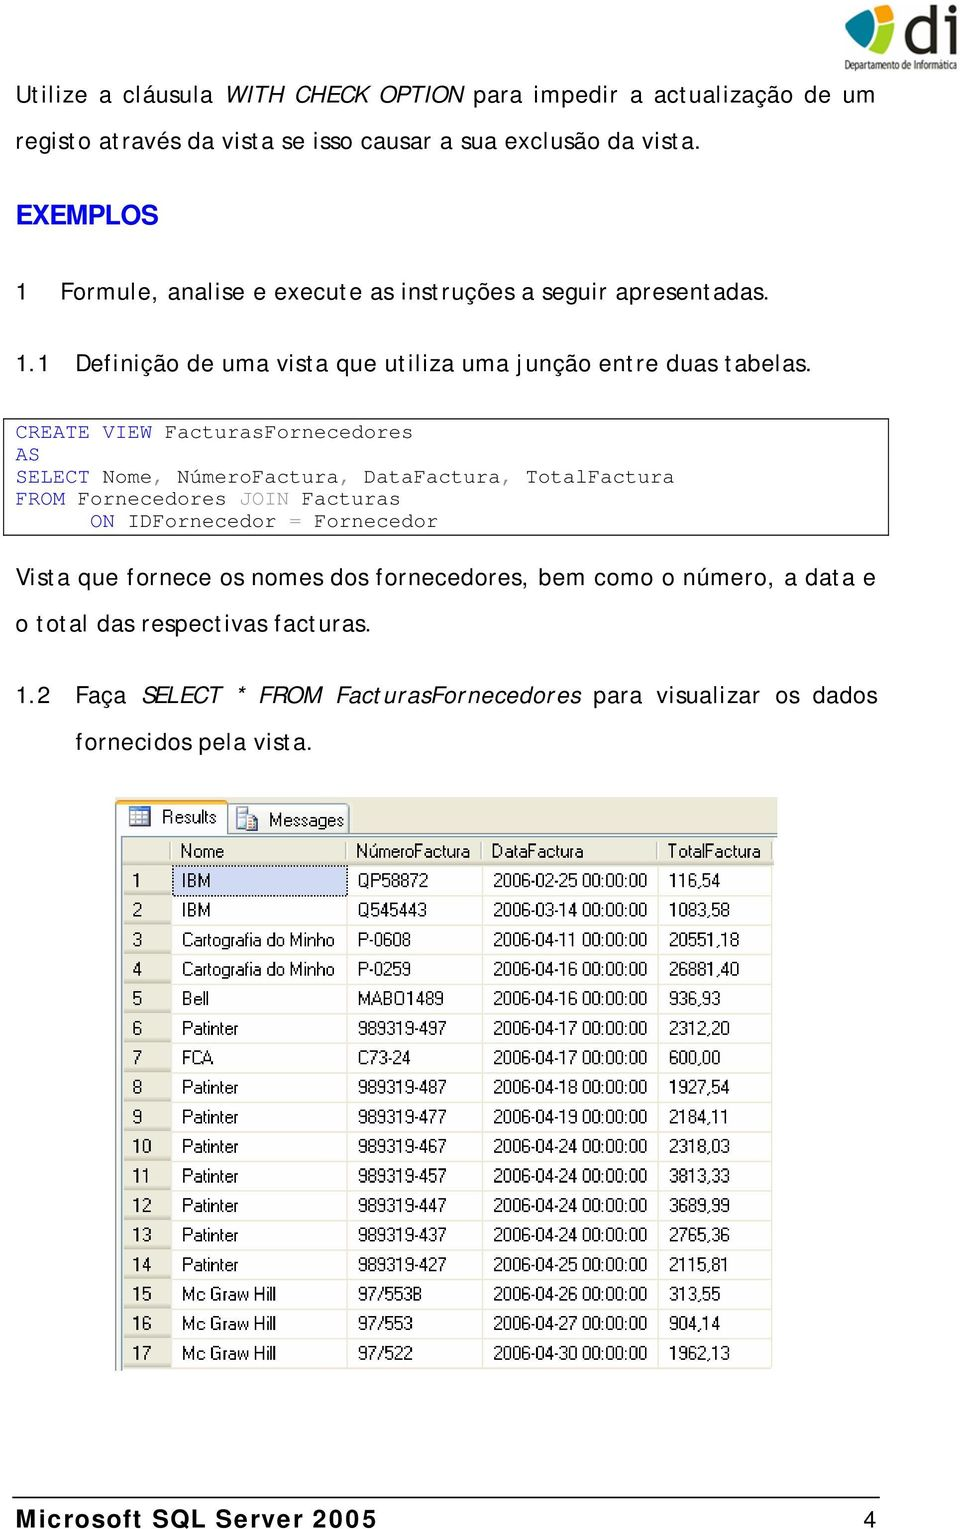 CREATE VIEW FacturasFornecedores AS SELECT Nome, NúmeroFactura, DataFactura, TotalFactura FROM Fornecedores JOIN Facturas ON IDFornecedor = Fornecedor Vista que